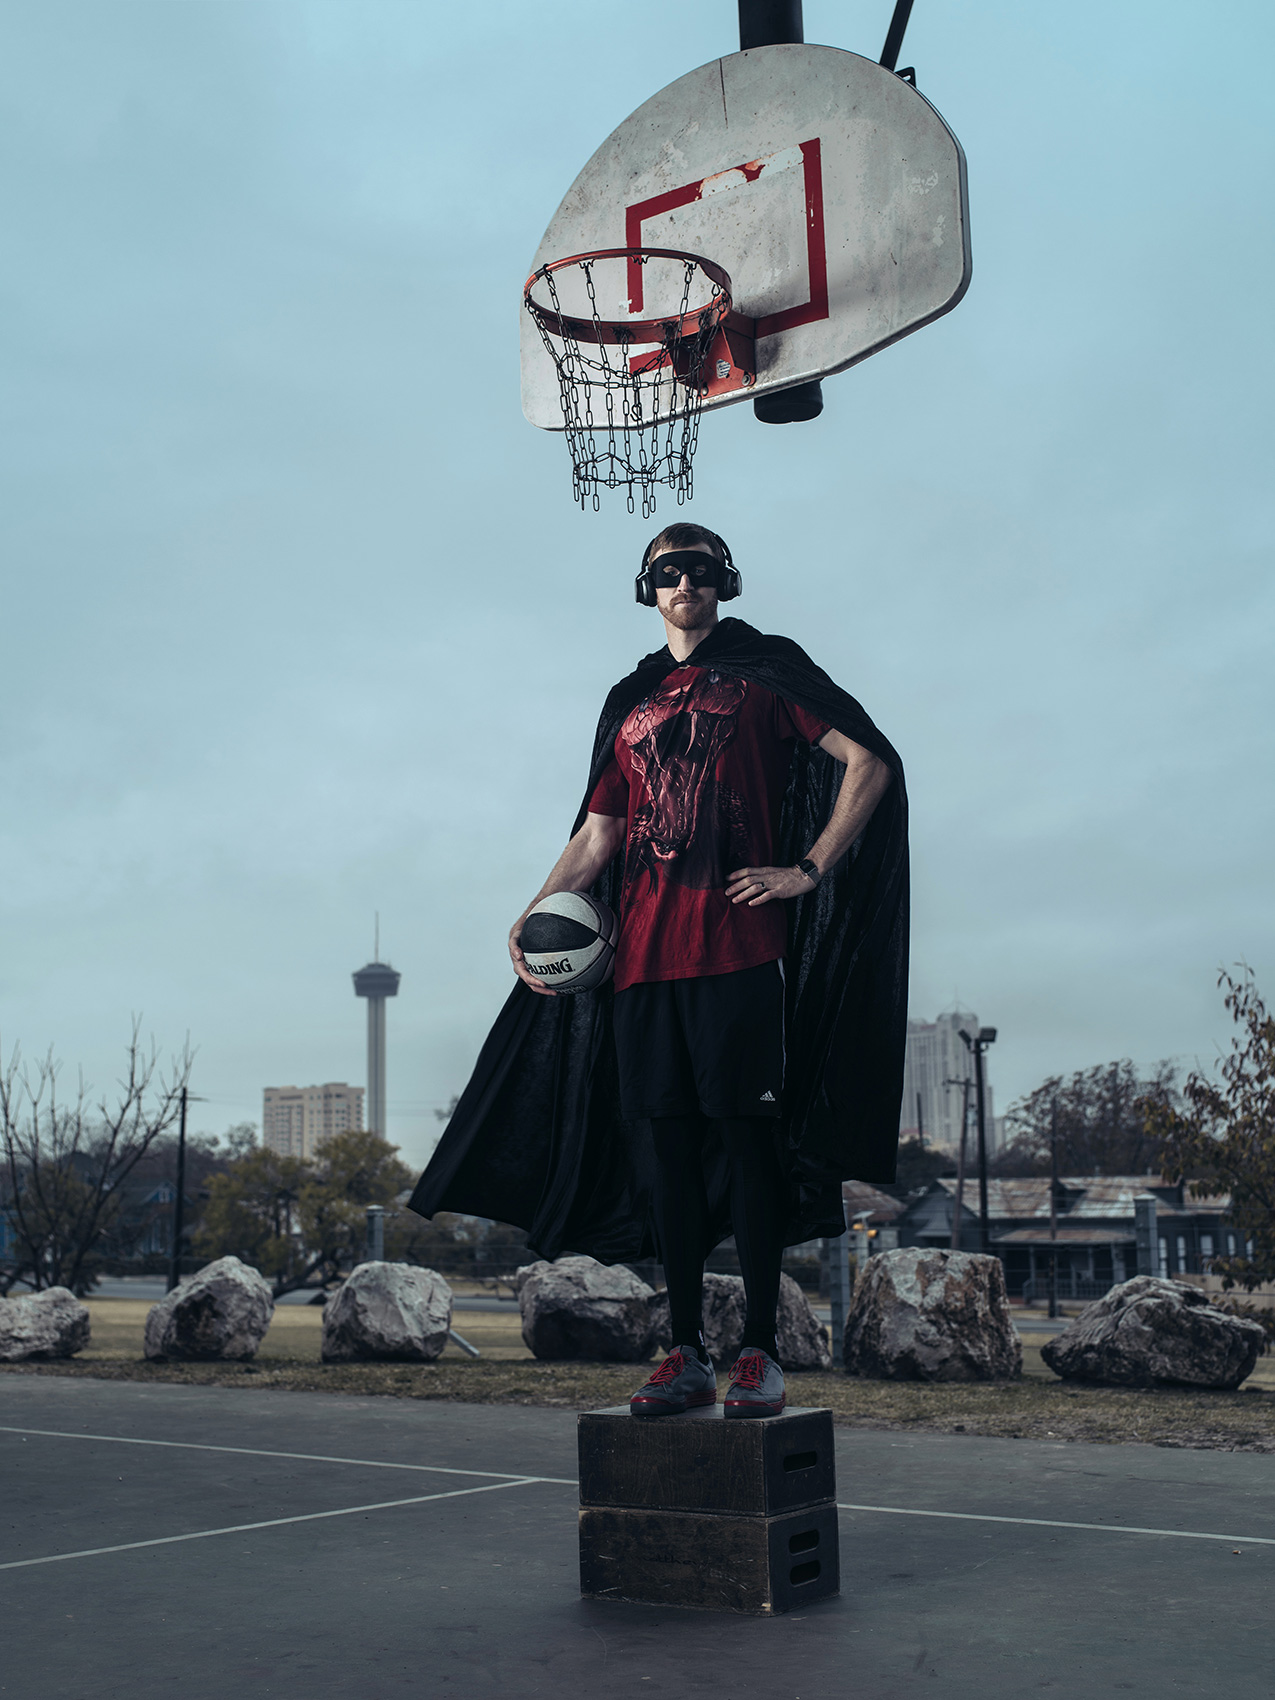 DJ Red Mamba, aka NBA player Matt Bonner photographed in San Antonio by photographer, Josh Huskin.